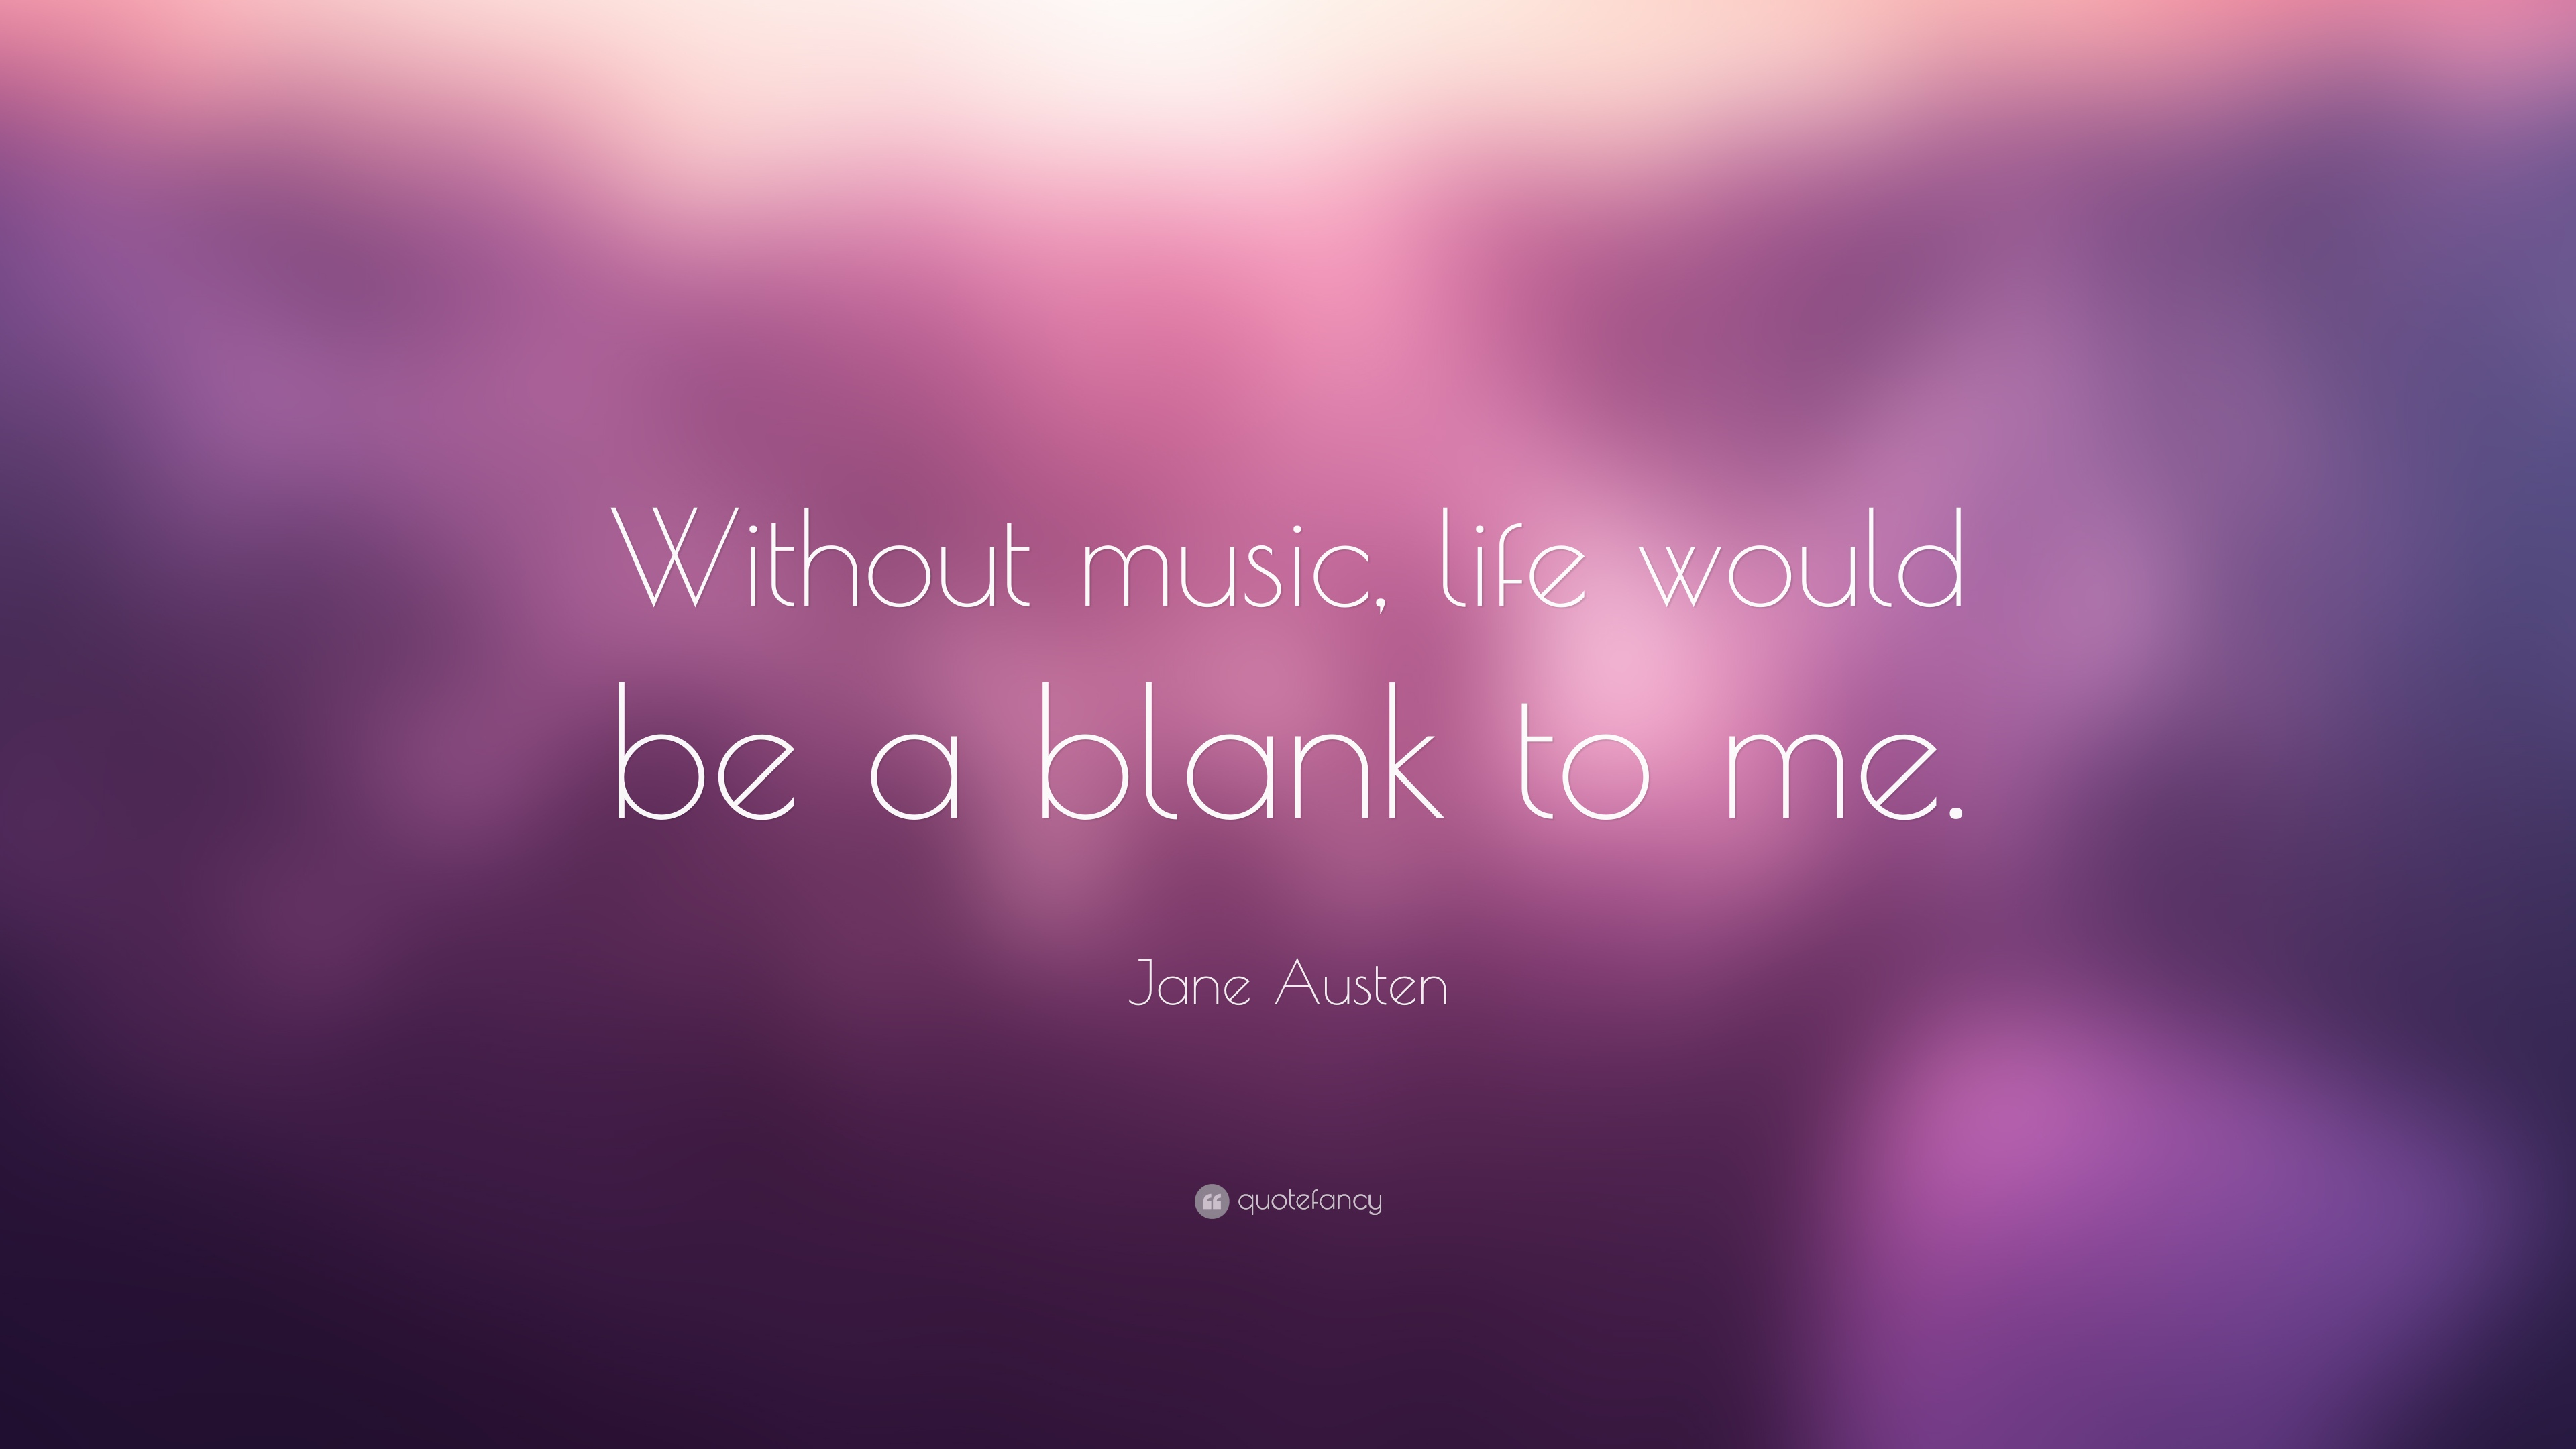 music quotes wallpapers - photo #11